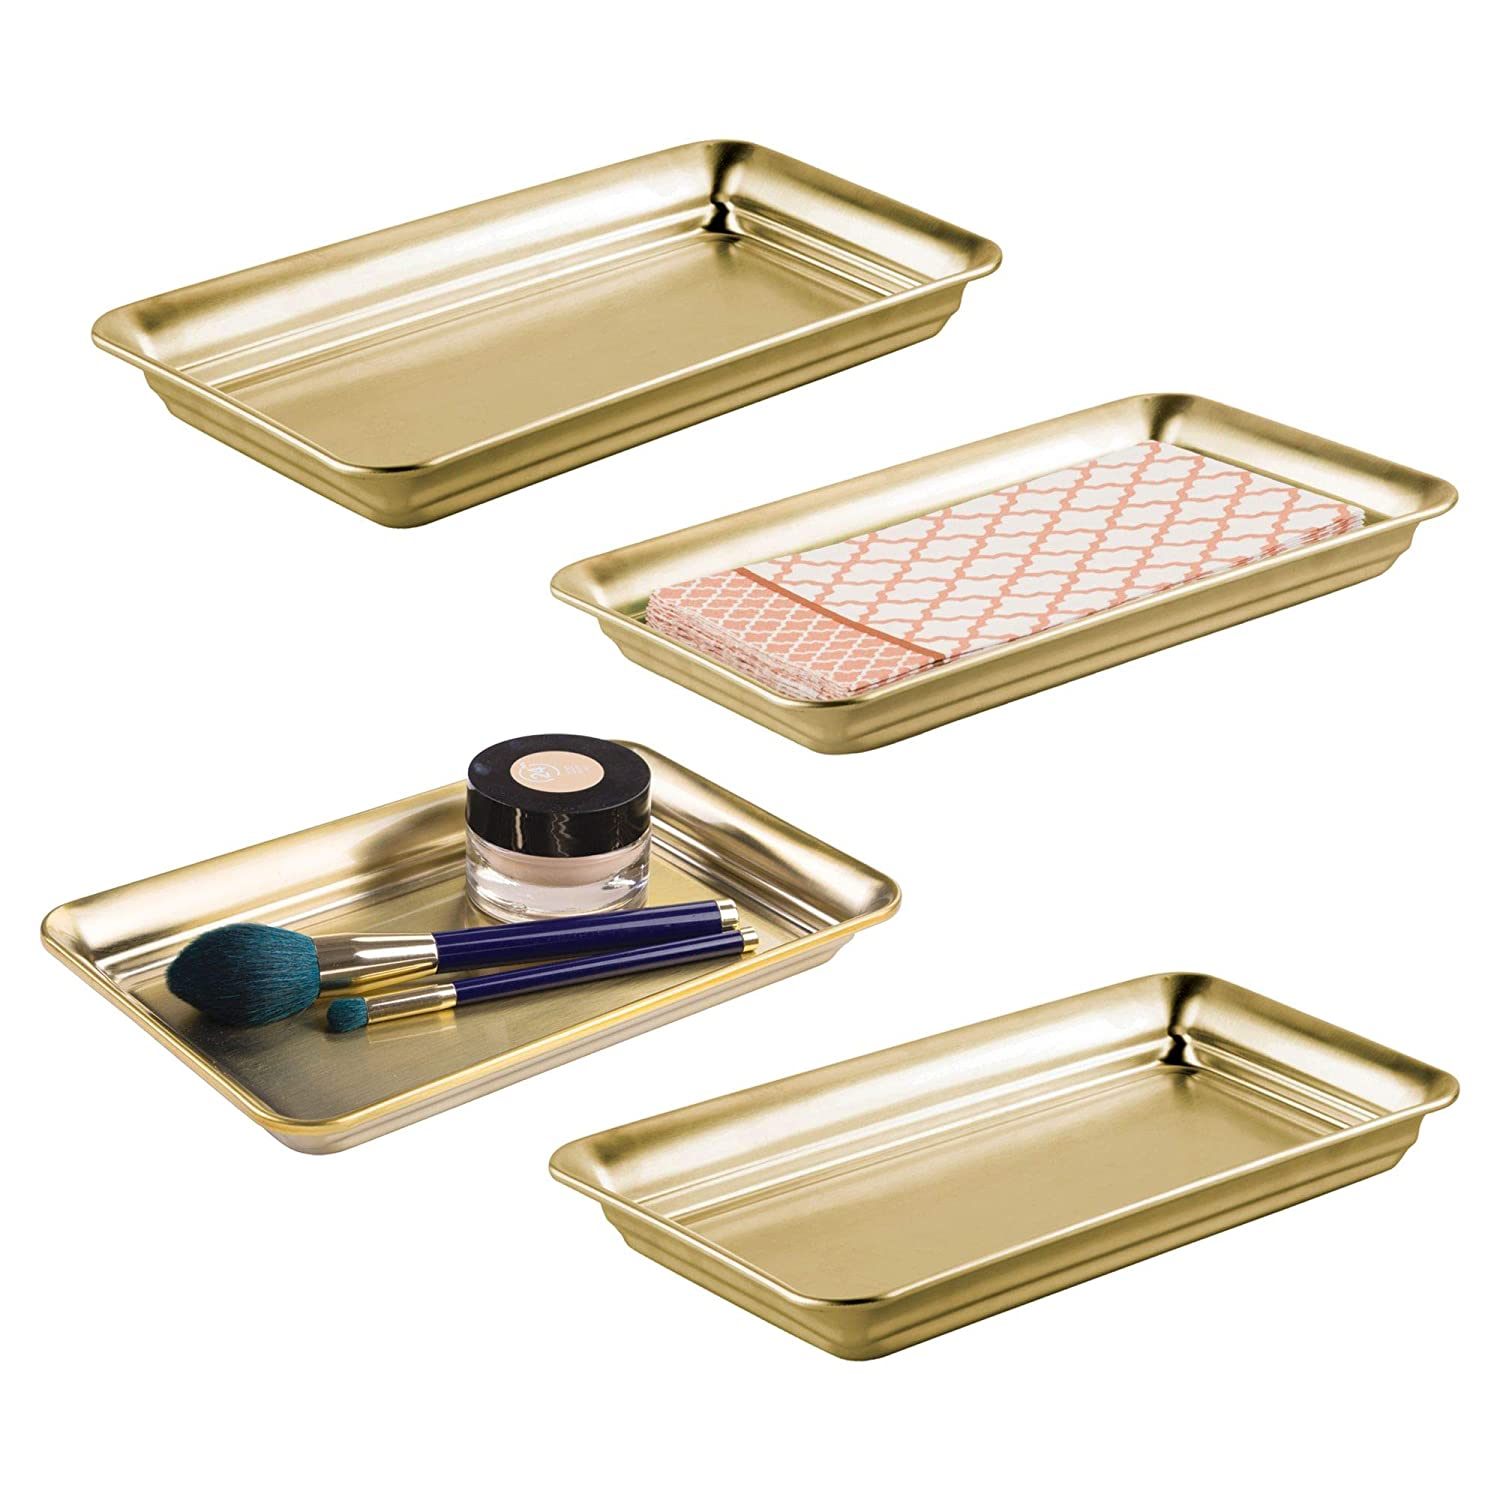 mDesign Metal Storage Organizer Tray Bathroom Vanity Countertops, Closets Dressers - Holder Guest Hand Towels, Jewelry, Makeup Brushes, Reading Glasses - Pack of 4, Soft Brass MetroDecor